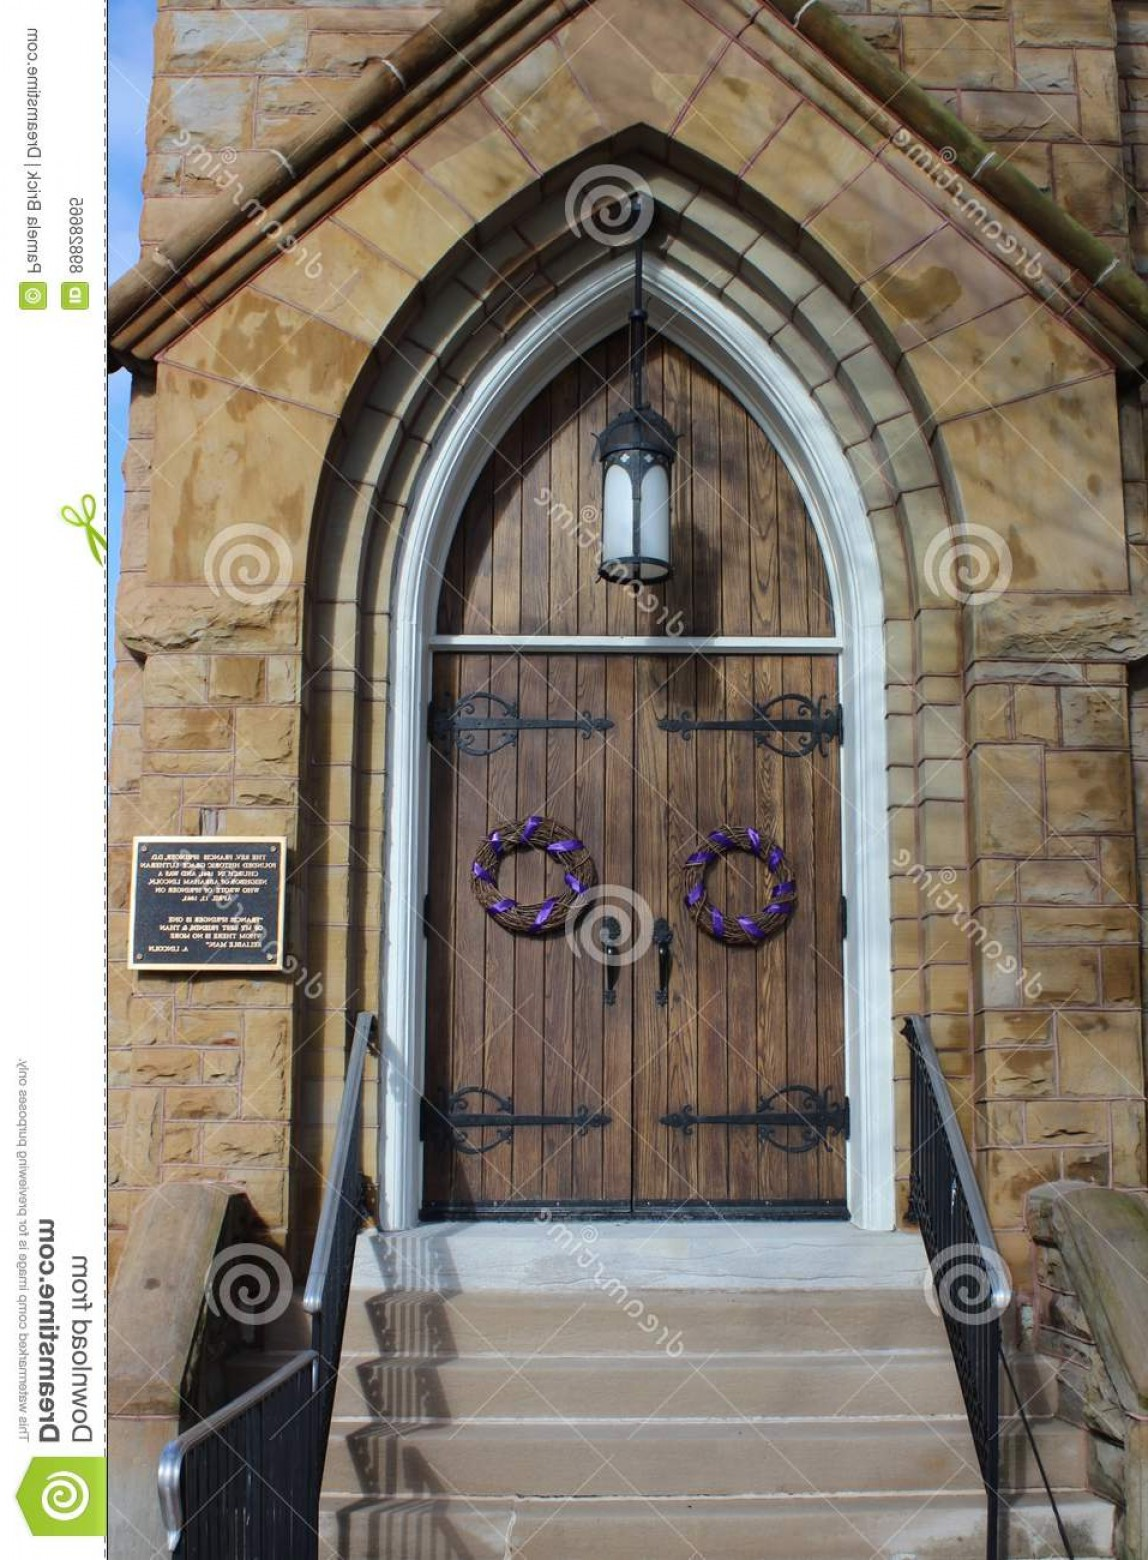 Arch Vector Illinios: Editorial Image Lenten Wreaths Grace Lutheran Church Doors Springfield Il Decorate Historic Illinois Quotation Abraham Image